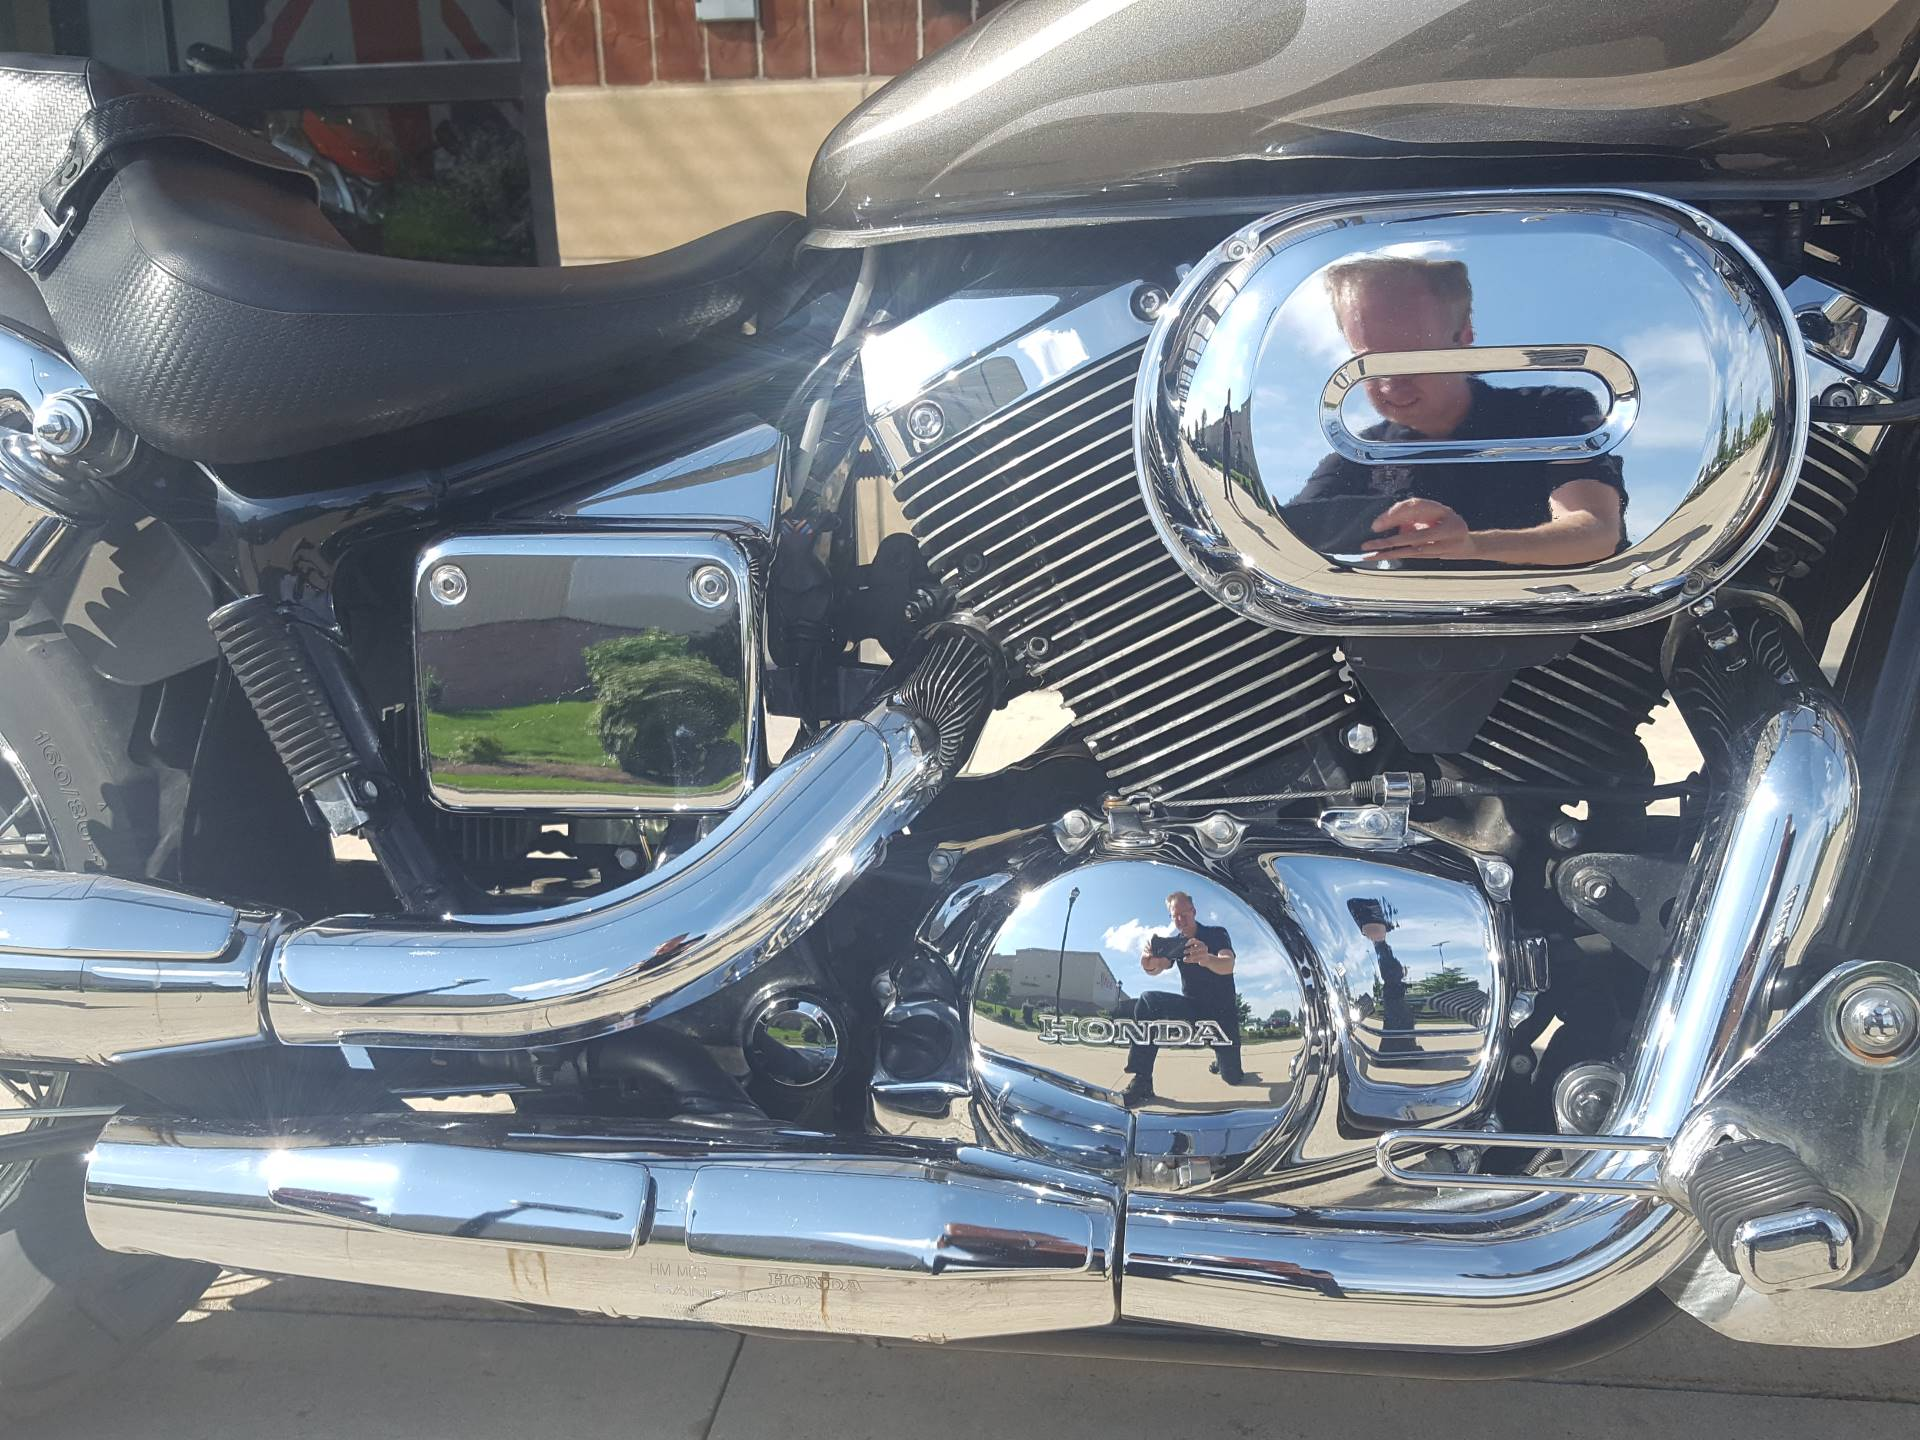 2006 Honda Shadow Spirit 750 5